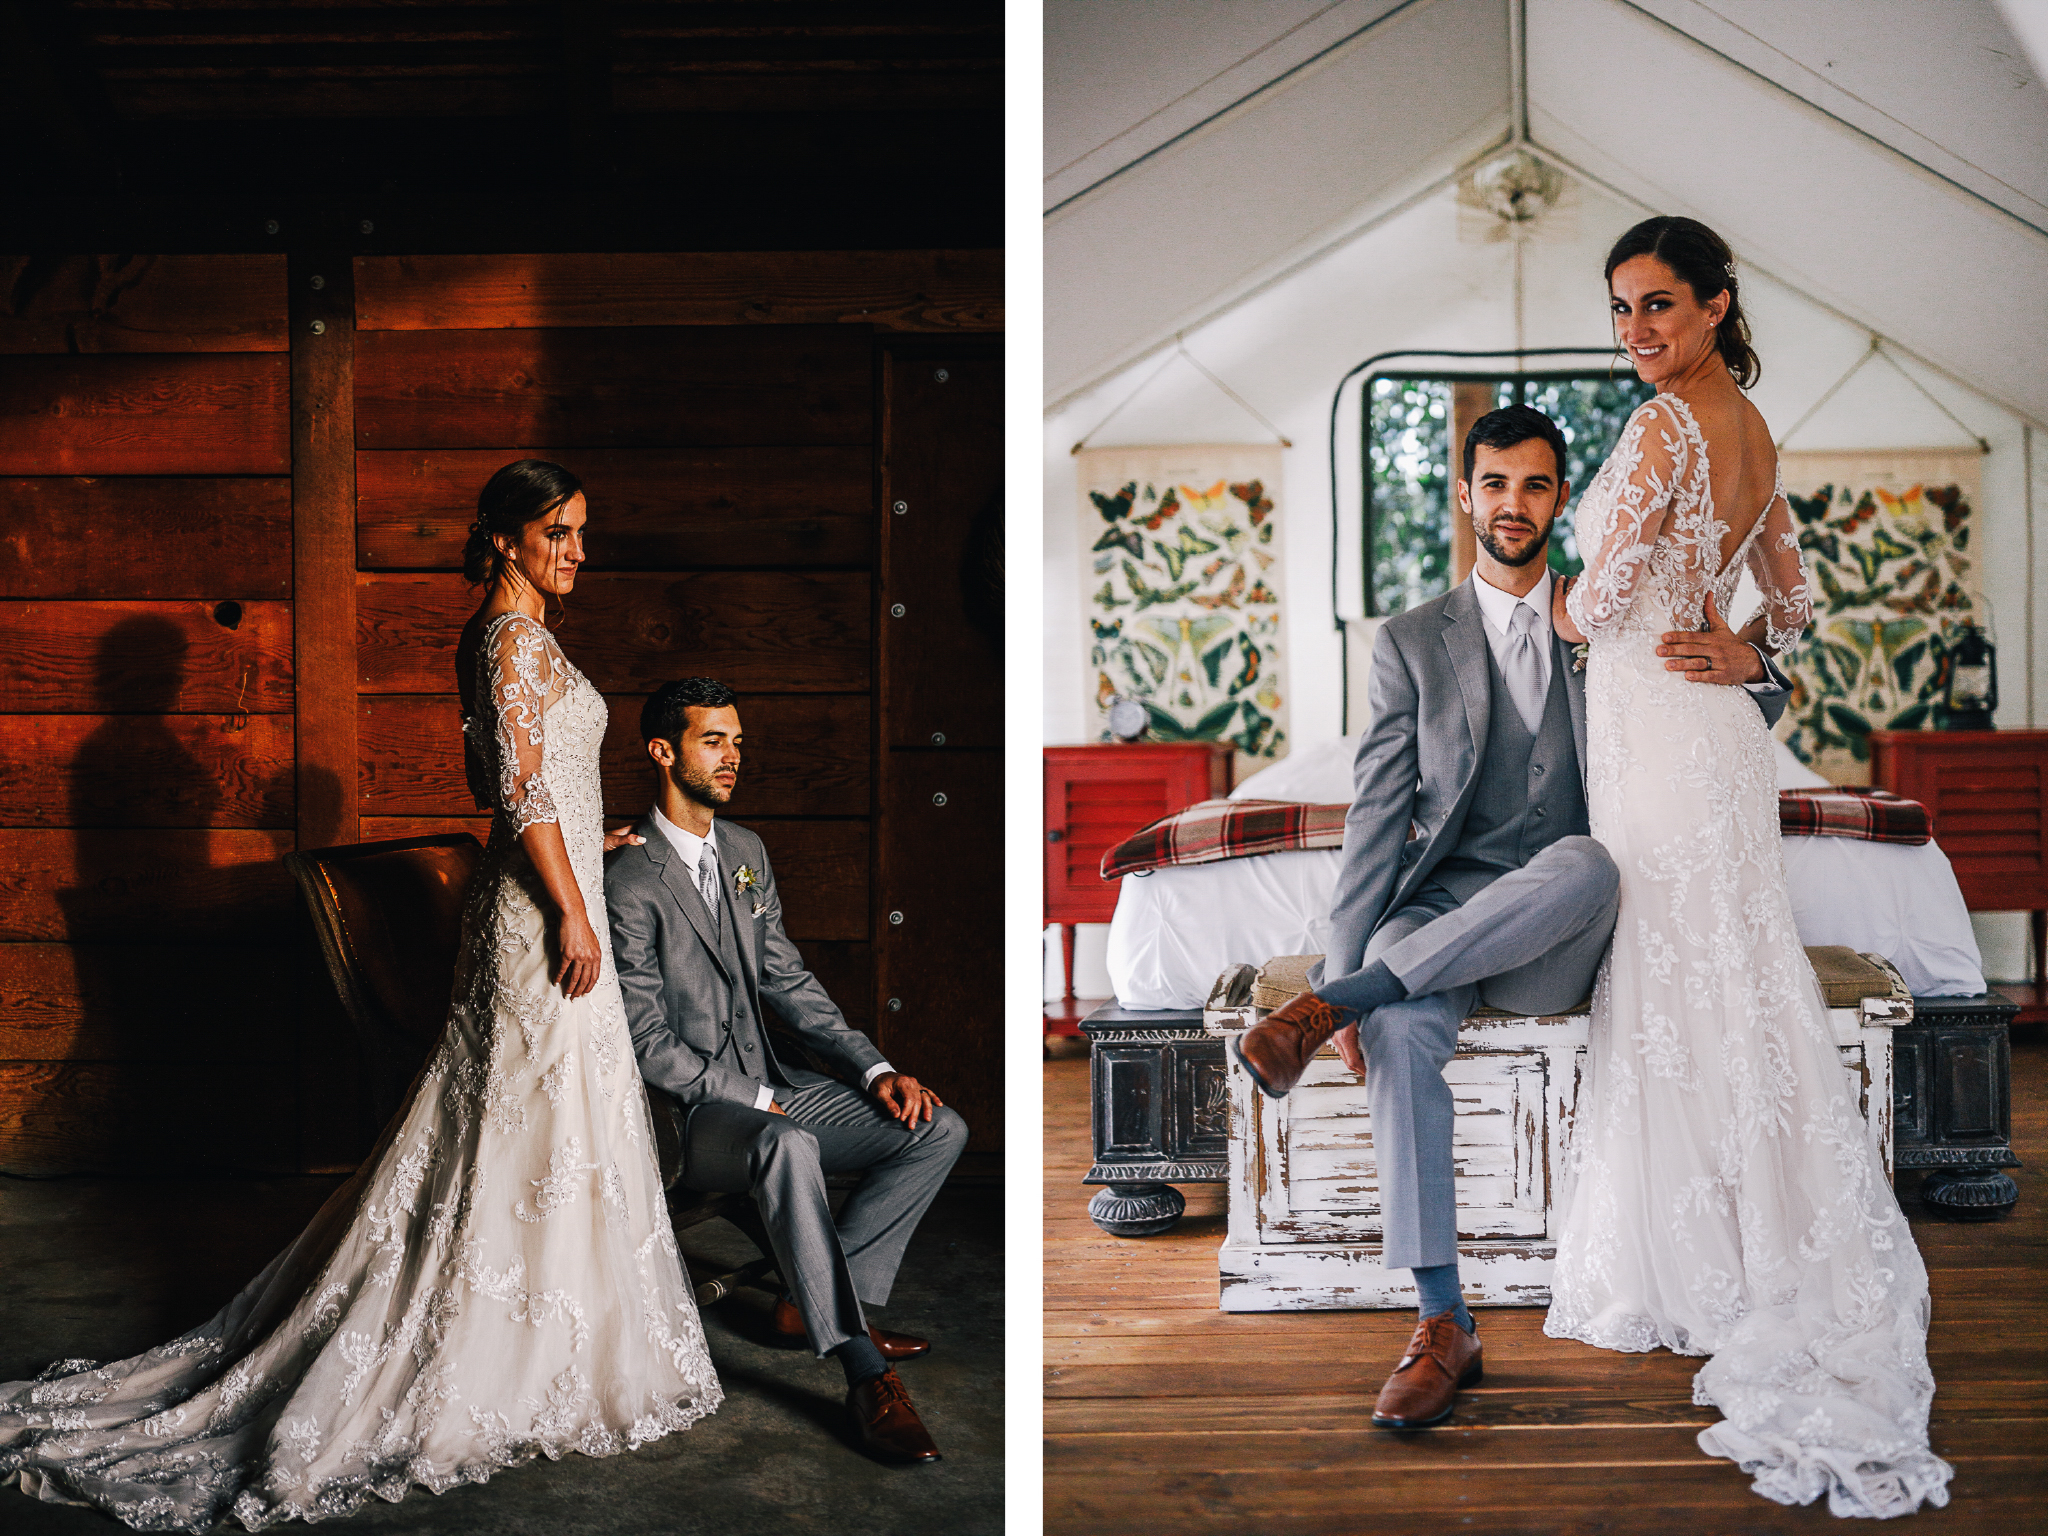 san diego wedding   photographer | collage of man sitting down with bride standing up beside him   in barn